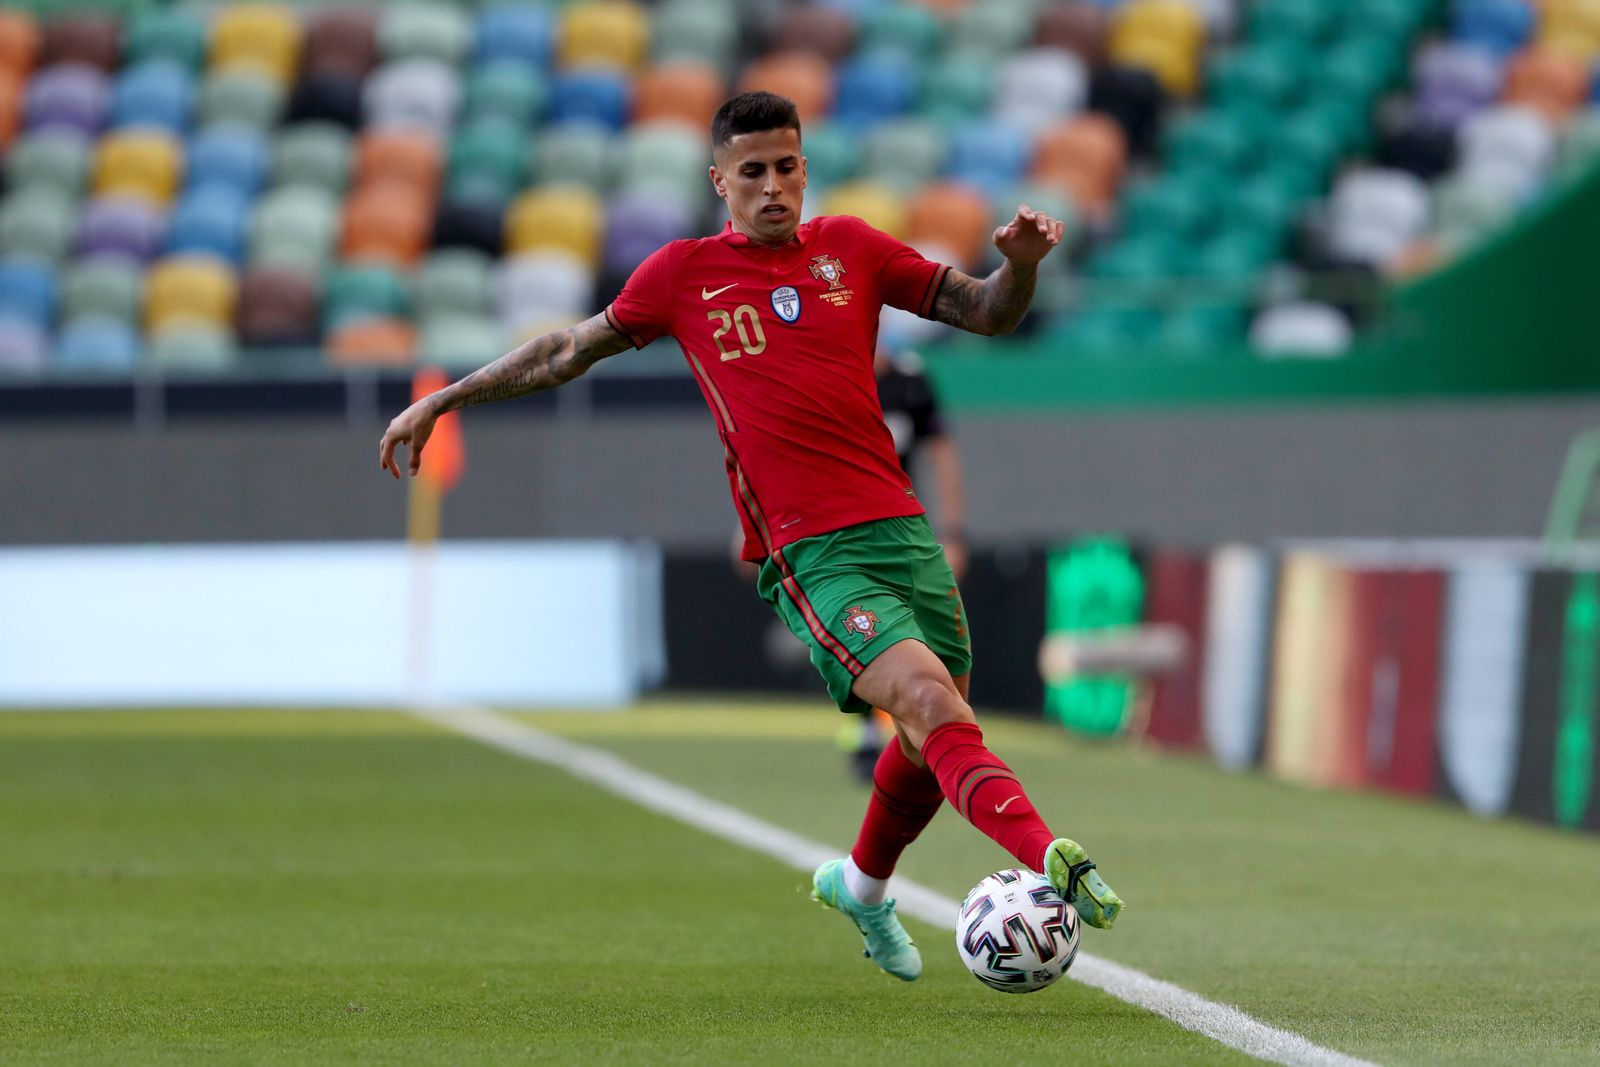 June 9, 2021, Lisbon, Portugal: Joao Cancelo of Portugal in action during the International Friendly, Länderspiel, Natio